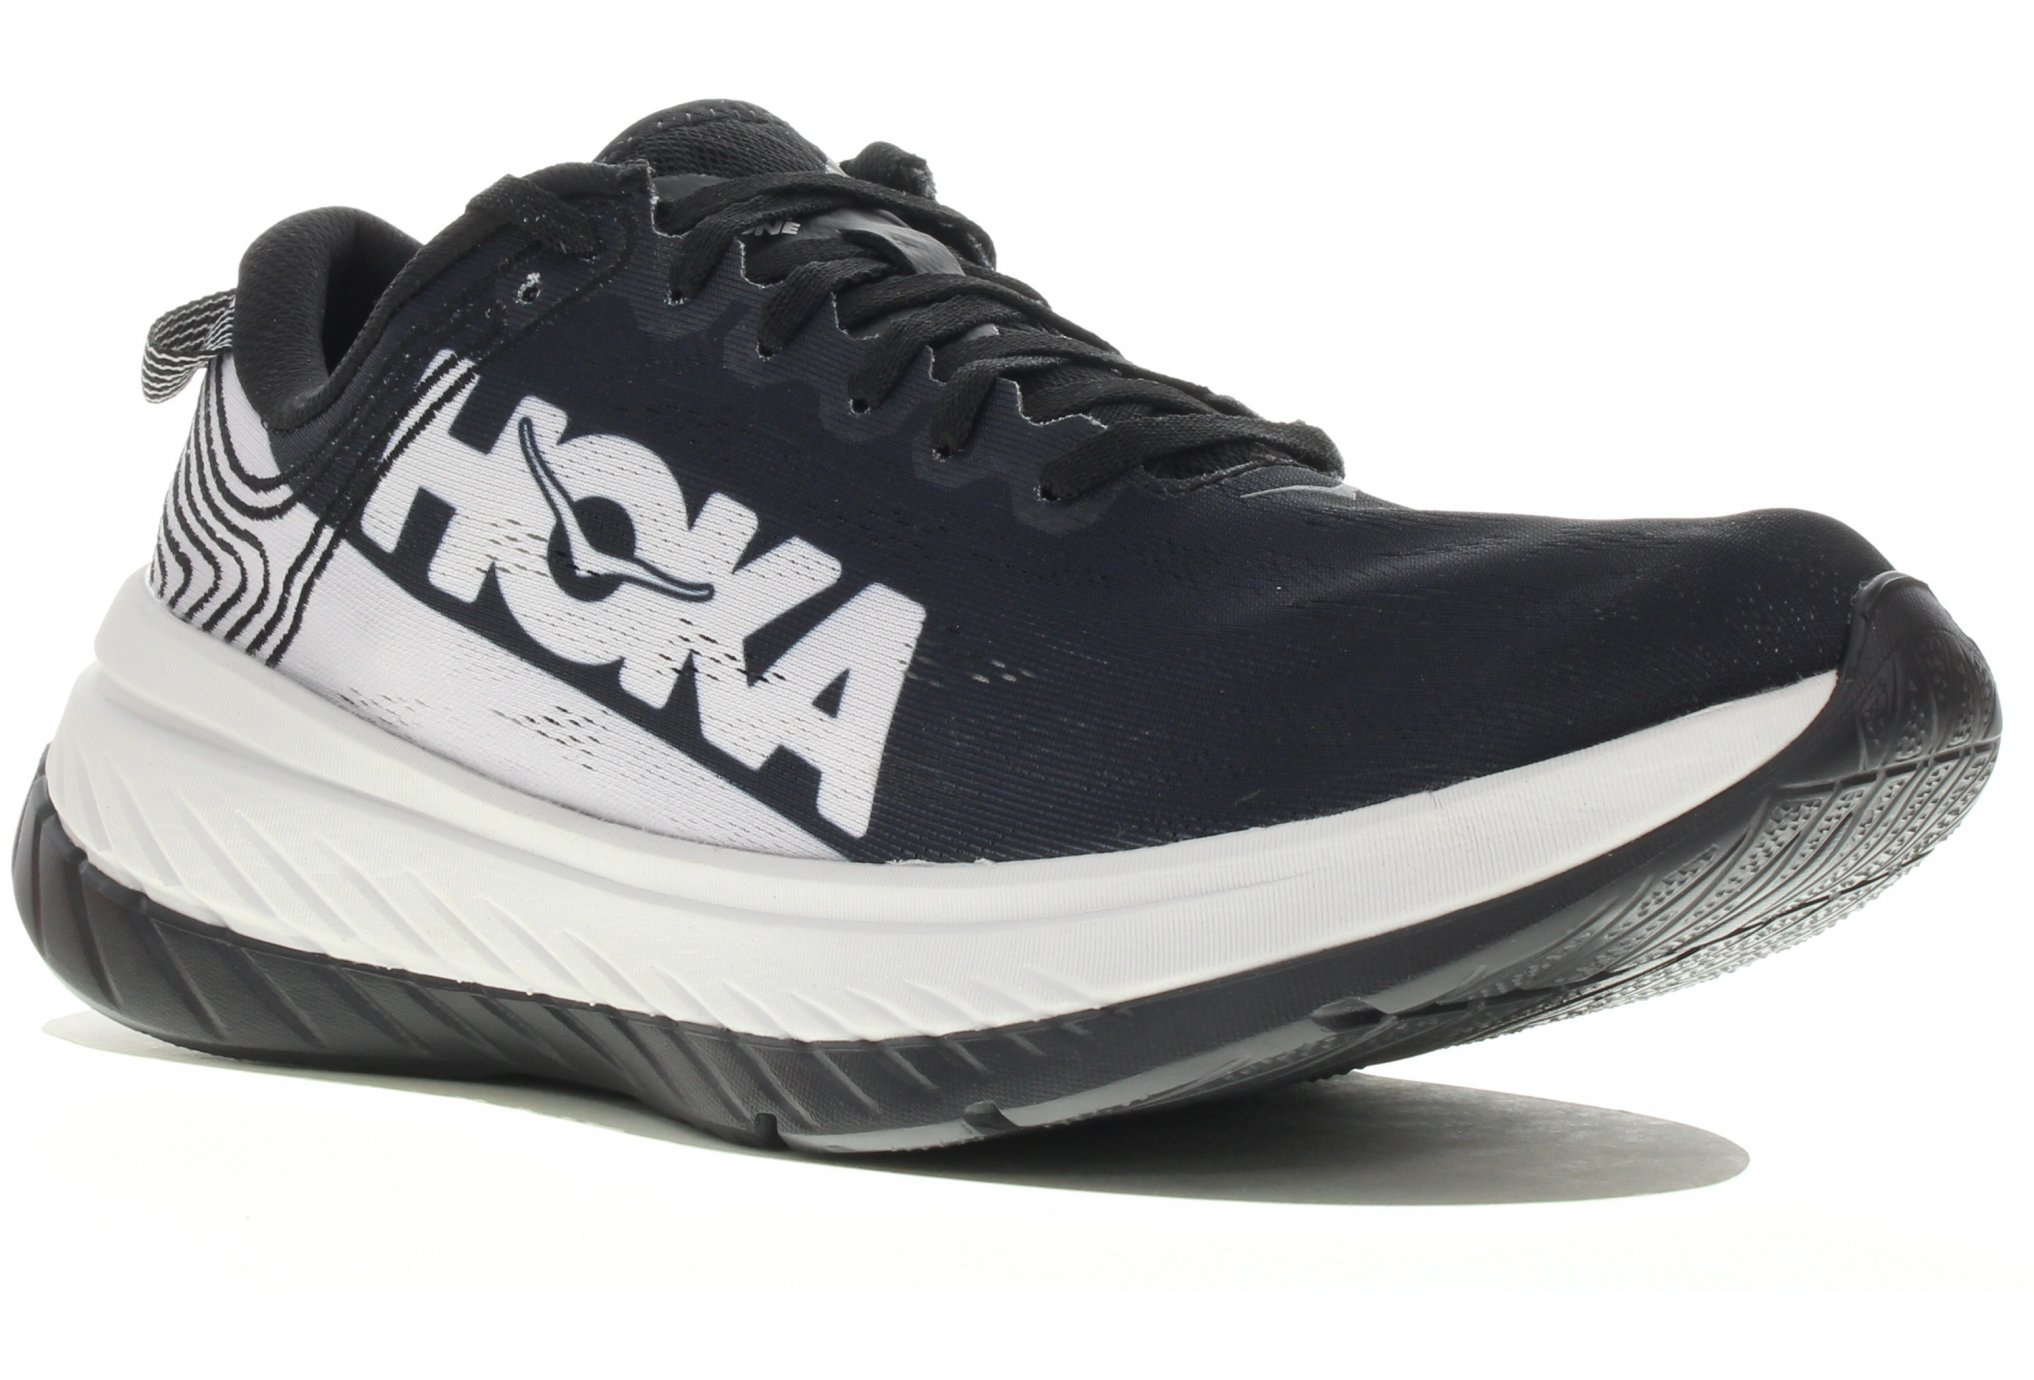 Hoka One One Carbon X Chaussures homme